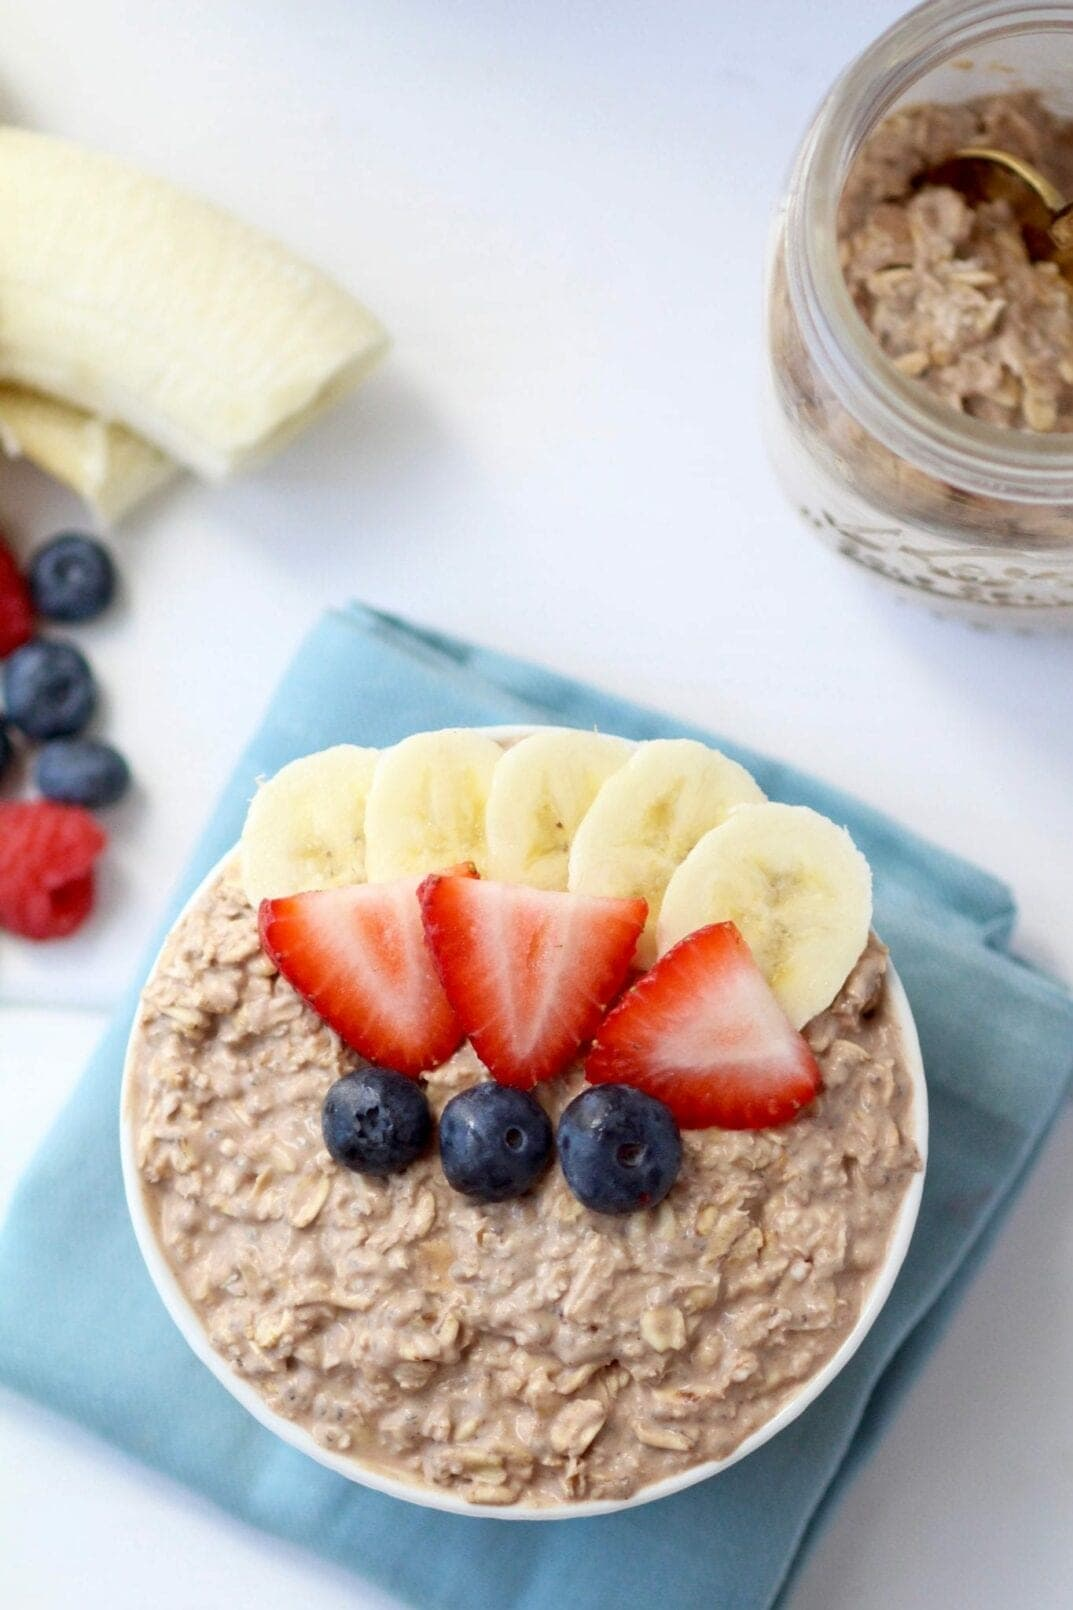 Healthy Chocolate Mousse Overnight Oats